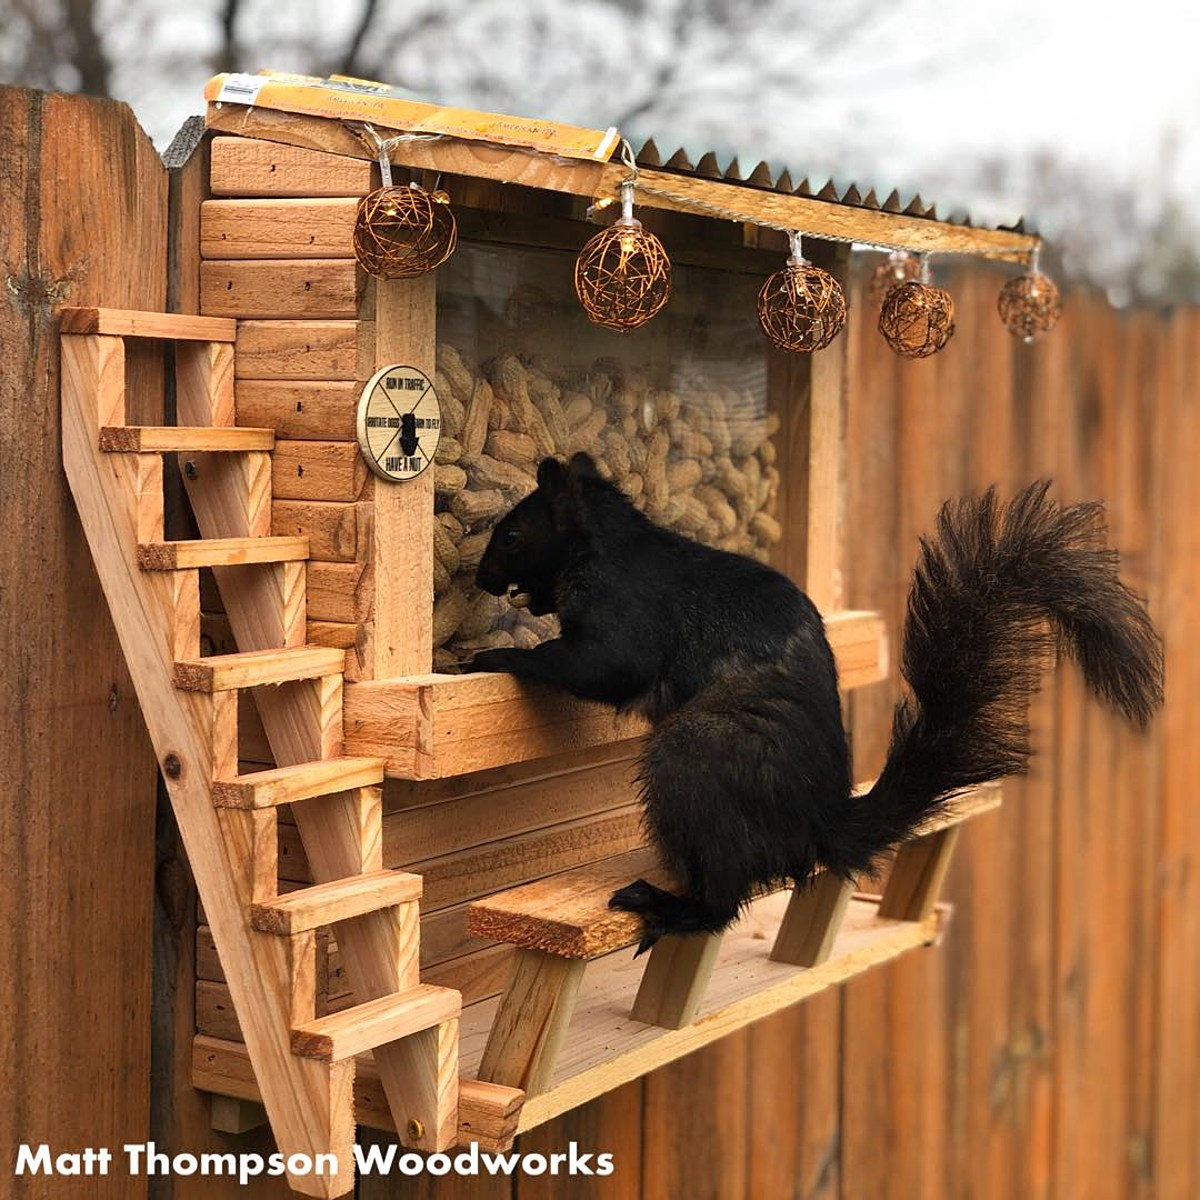 Man Builds Bar for Squirrels in His Backyard